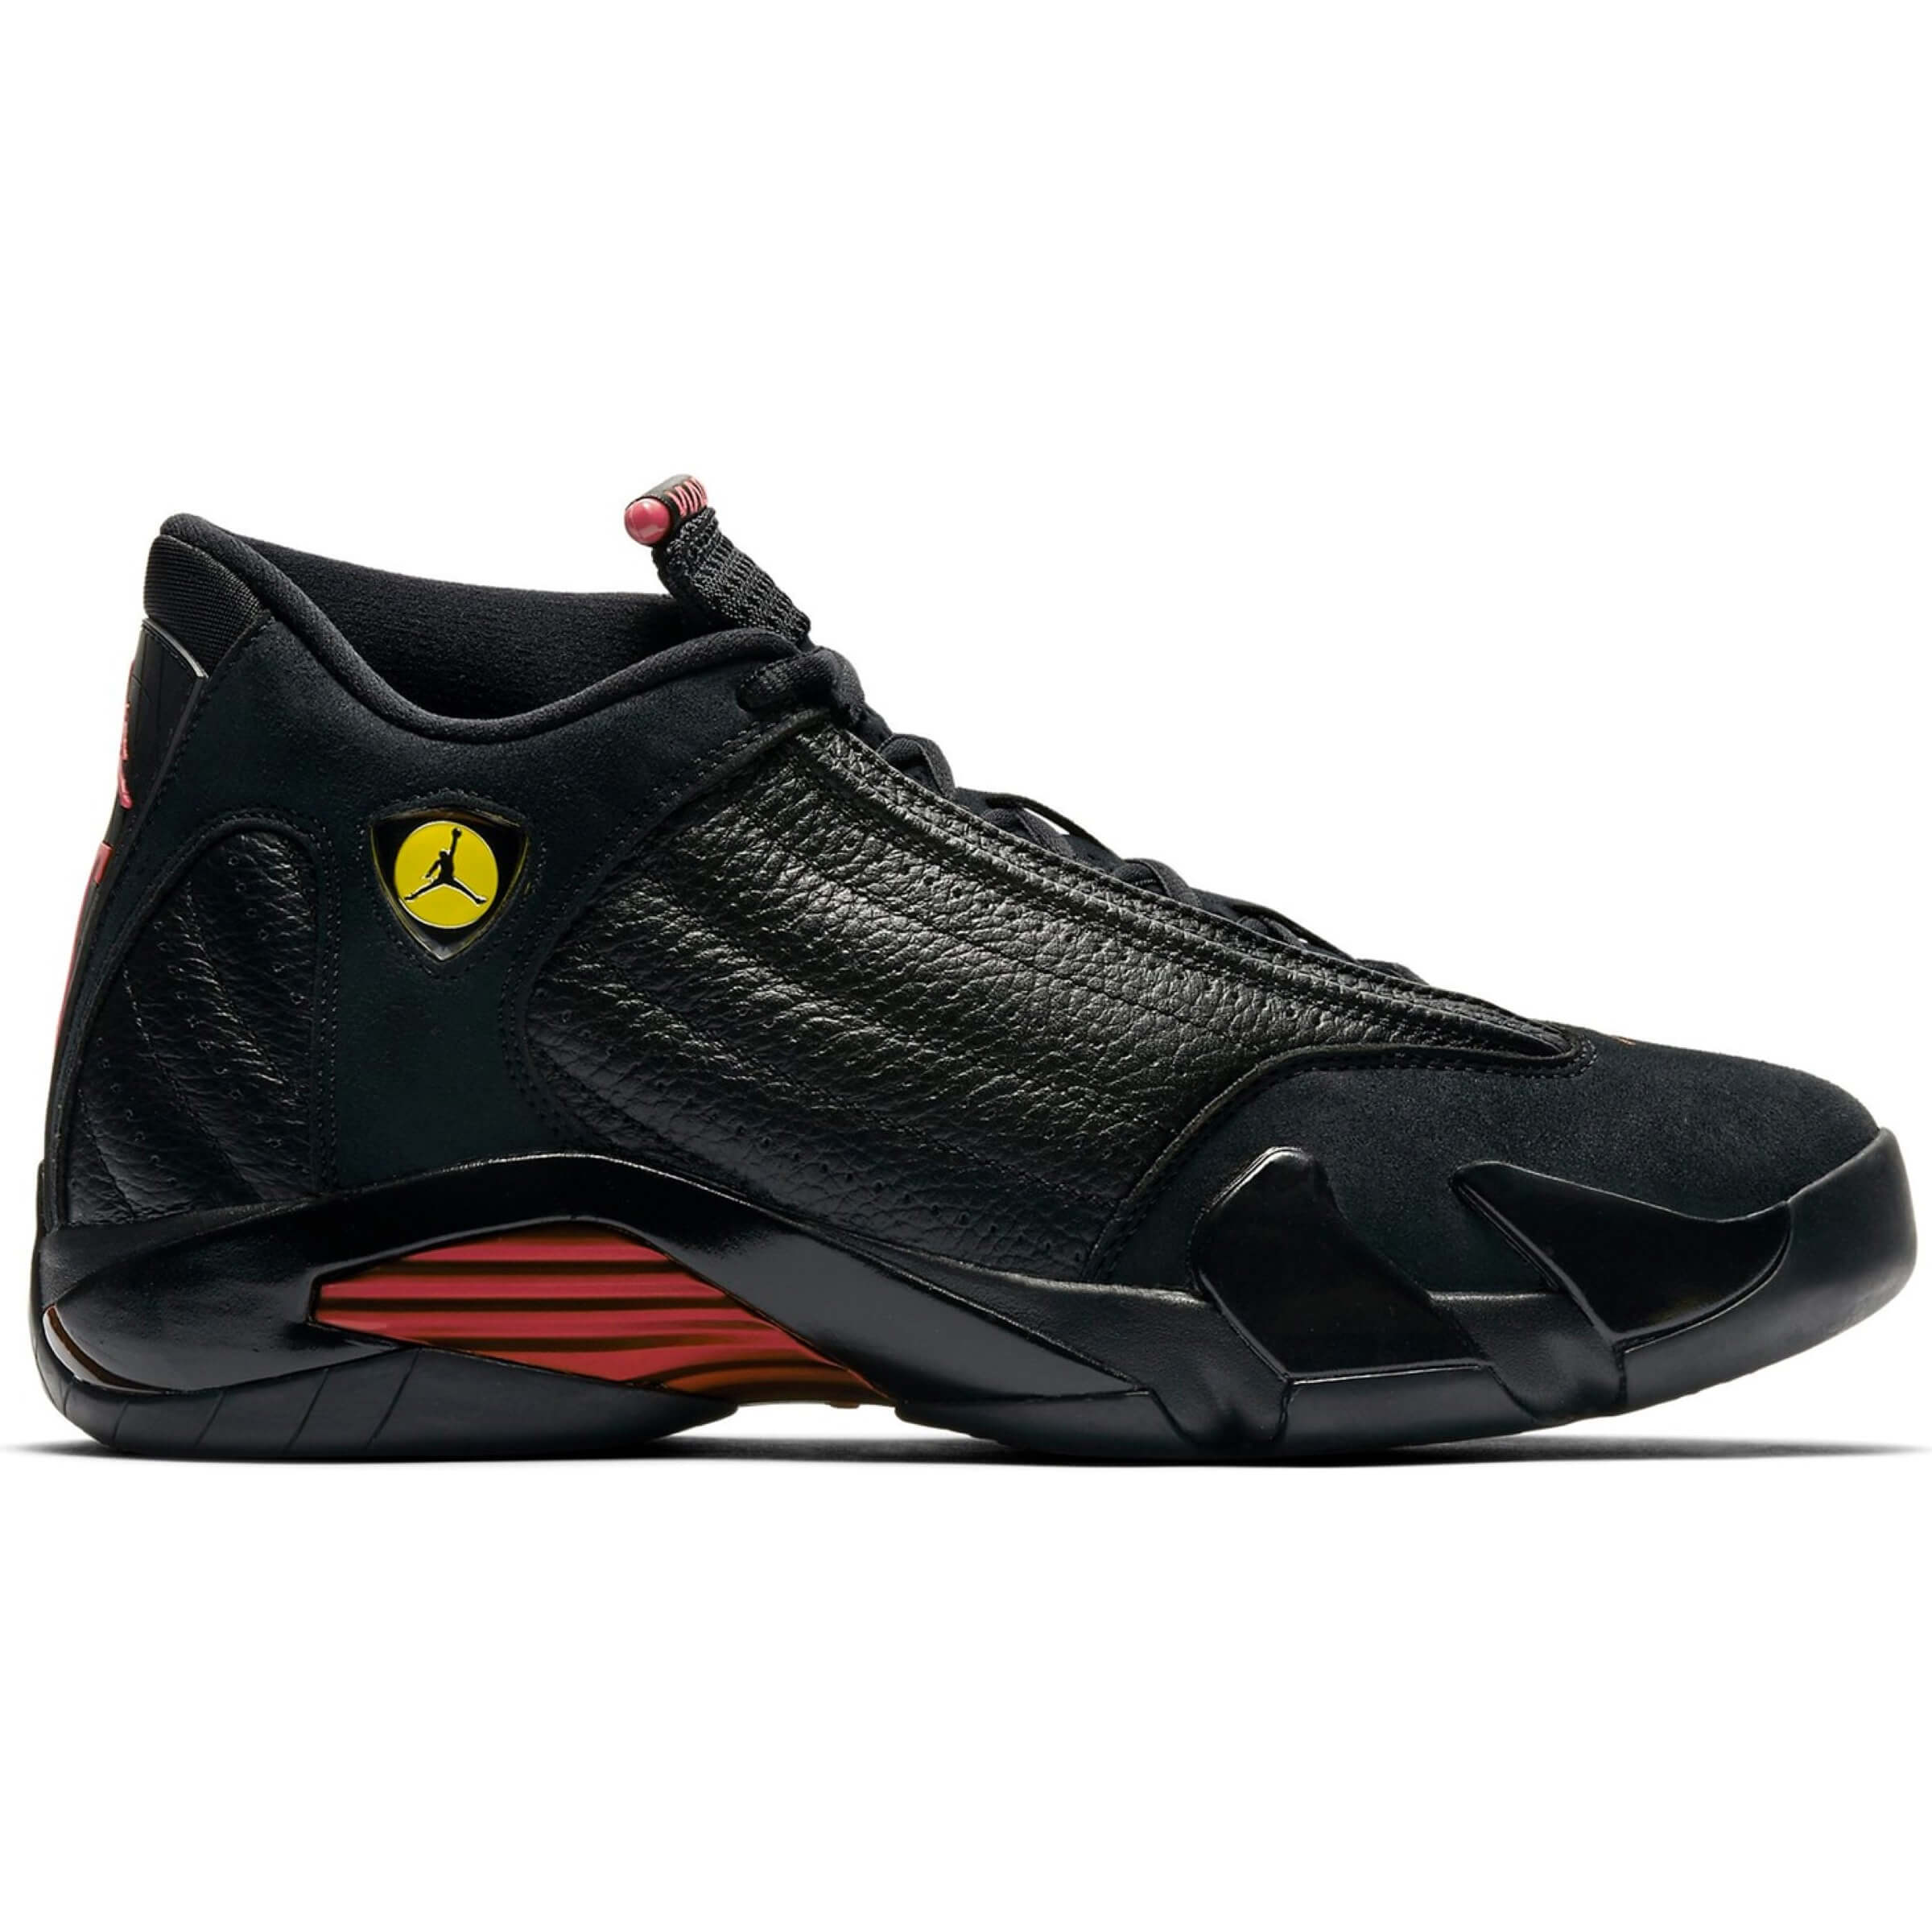 fdb9a9c7923 If you could only pick one shoe that was synonymous with Michael Jordan's  legacy, it'd probably be the Air Jordan 14. MJ had worn the Air Jordan 13  for the ...